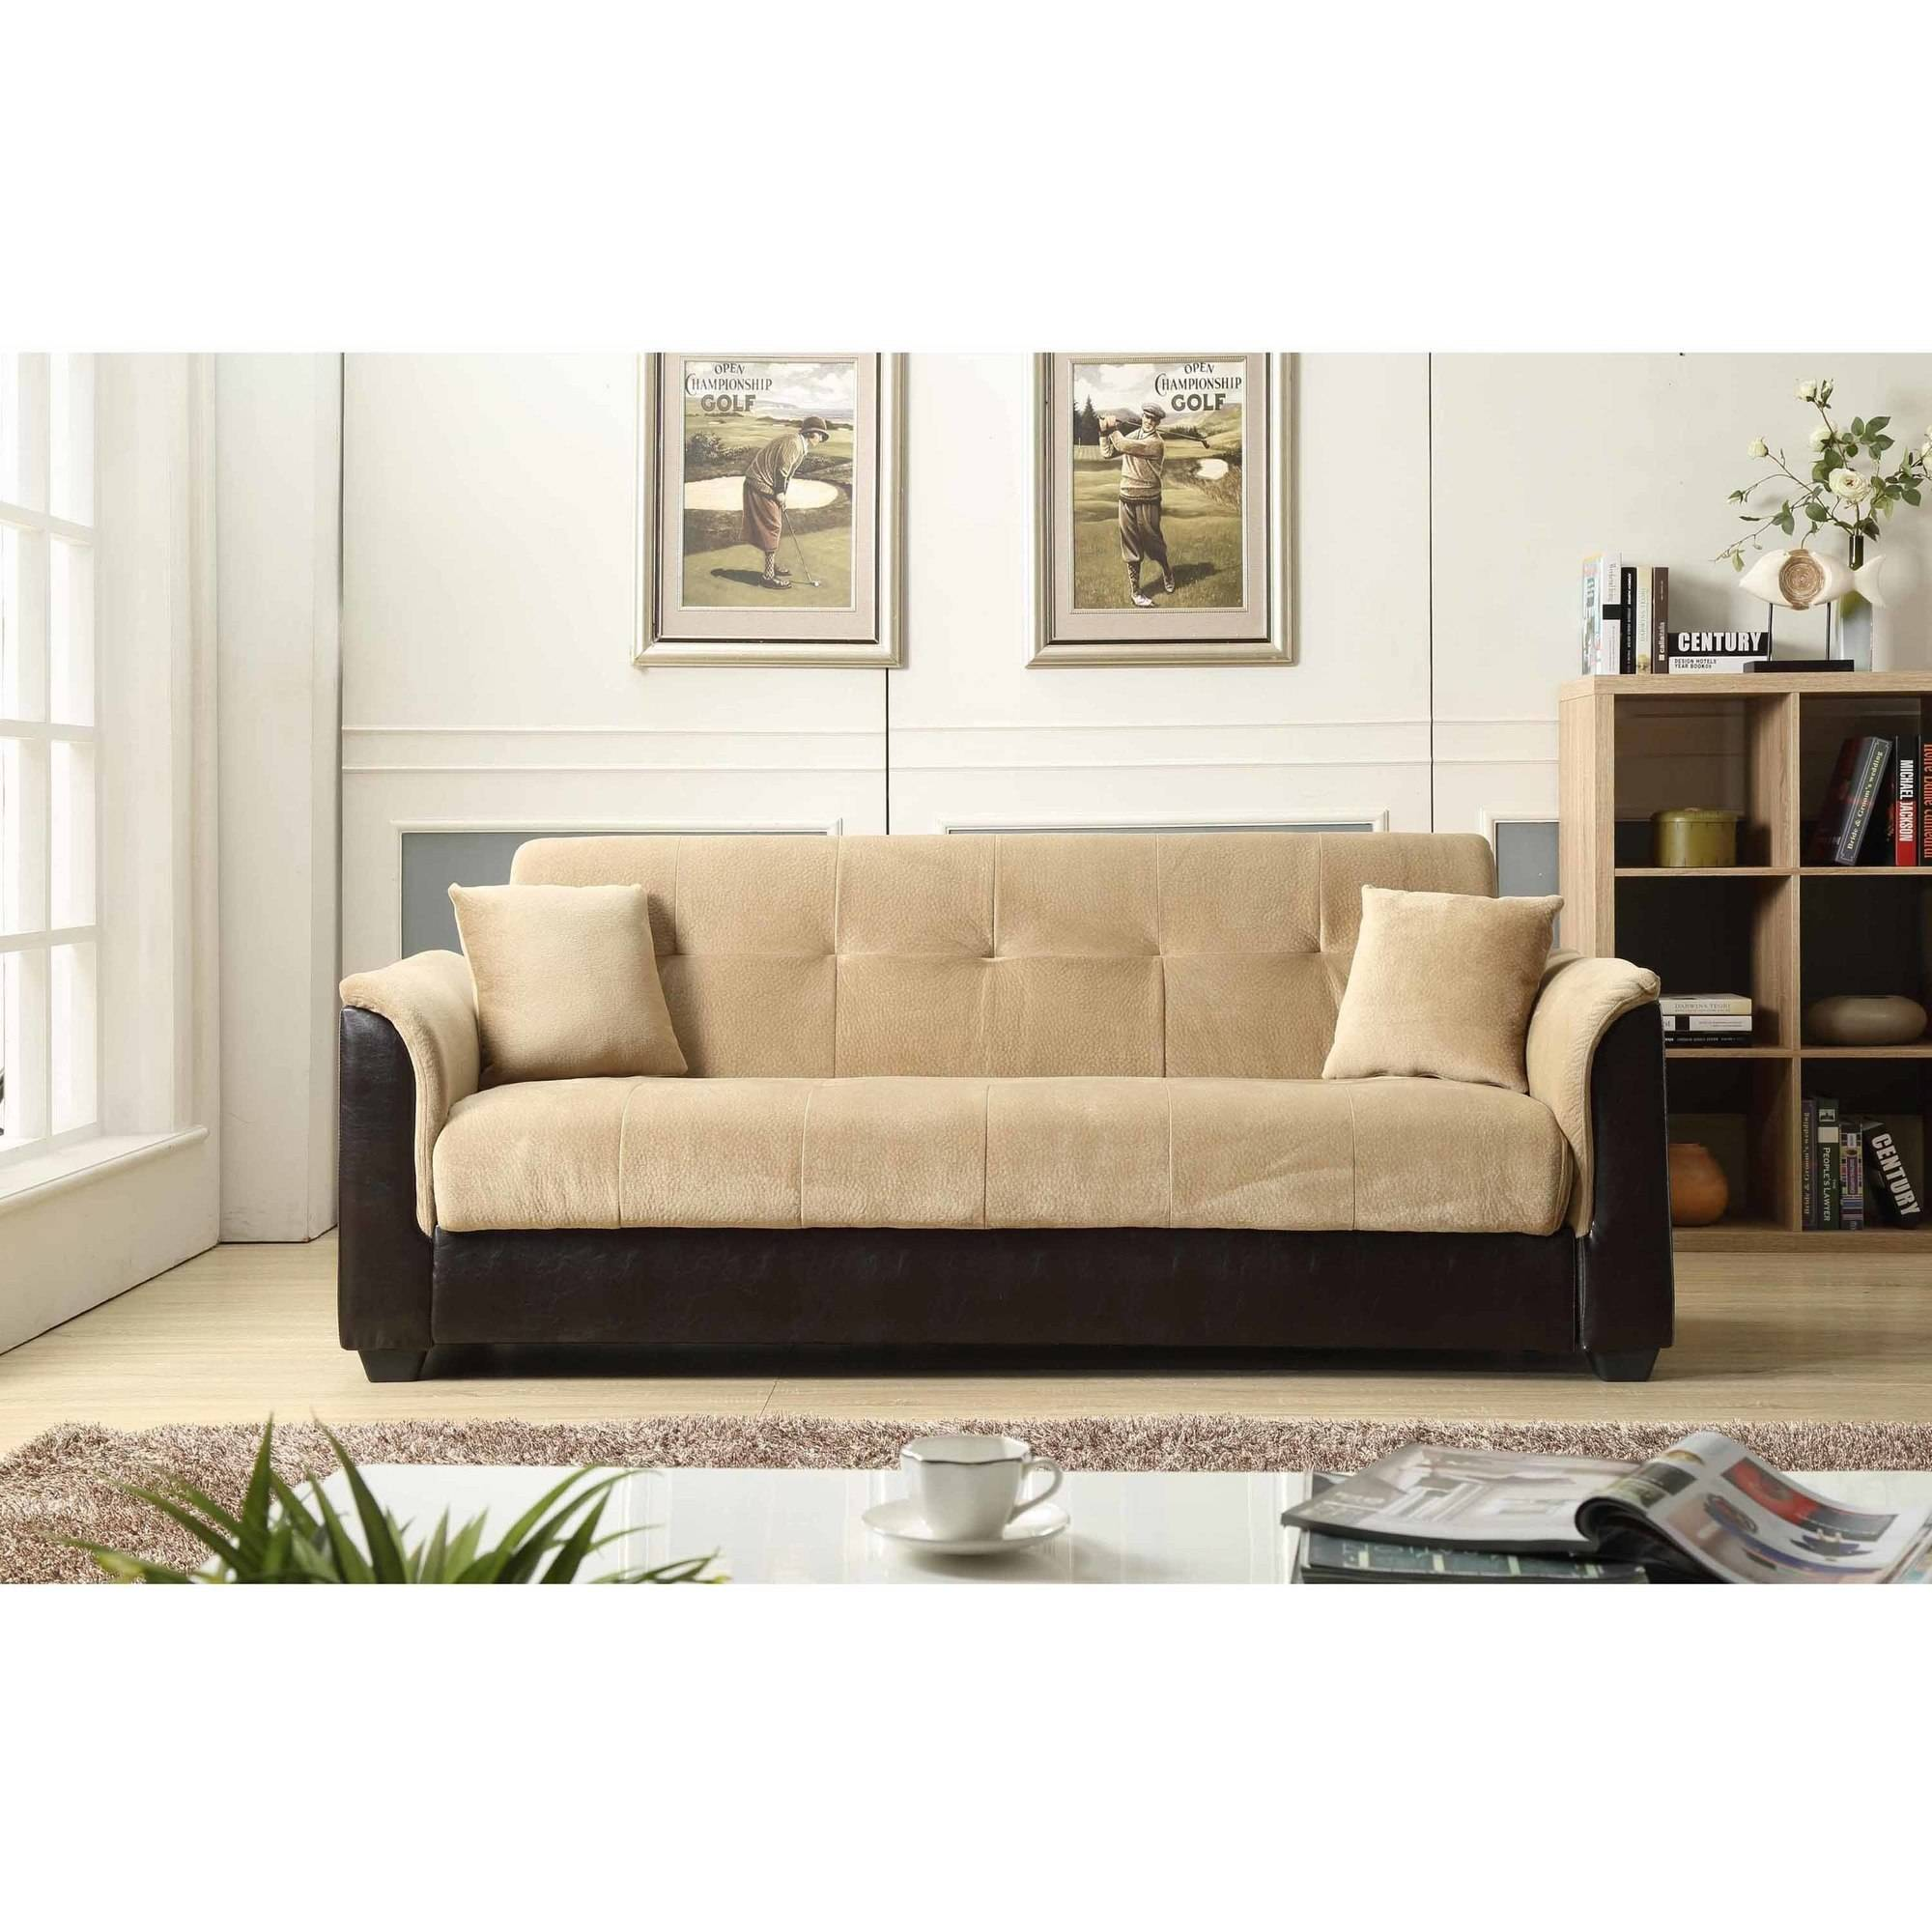 Picture of: Nathaniel Home Melanie Champion Sofa Bed With Storage Multiple Colors Walmart Com Walmart Com